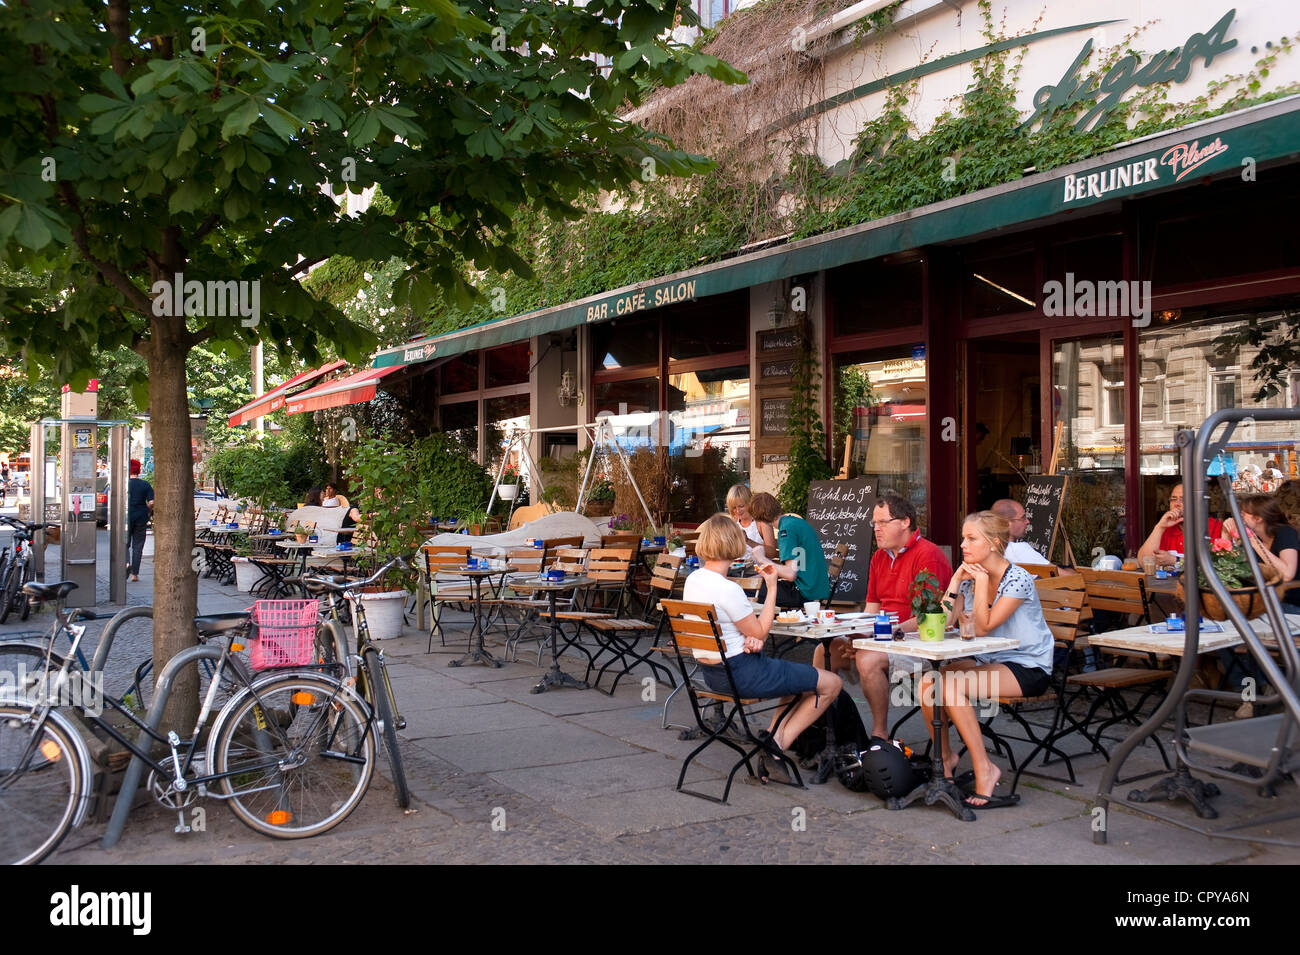 germany berlin prenzlauer berg district kastanienllee cafe stock photo 48543901 alamy. Black Bedroom Furniture Sets. Home Design Ideas